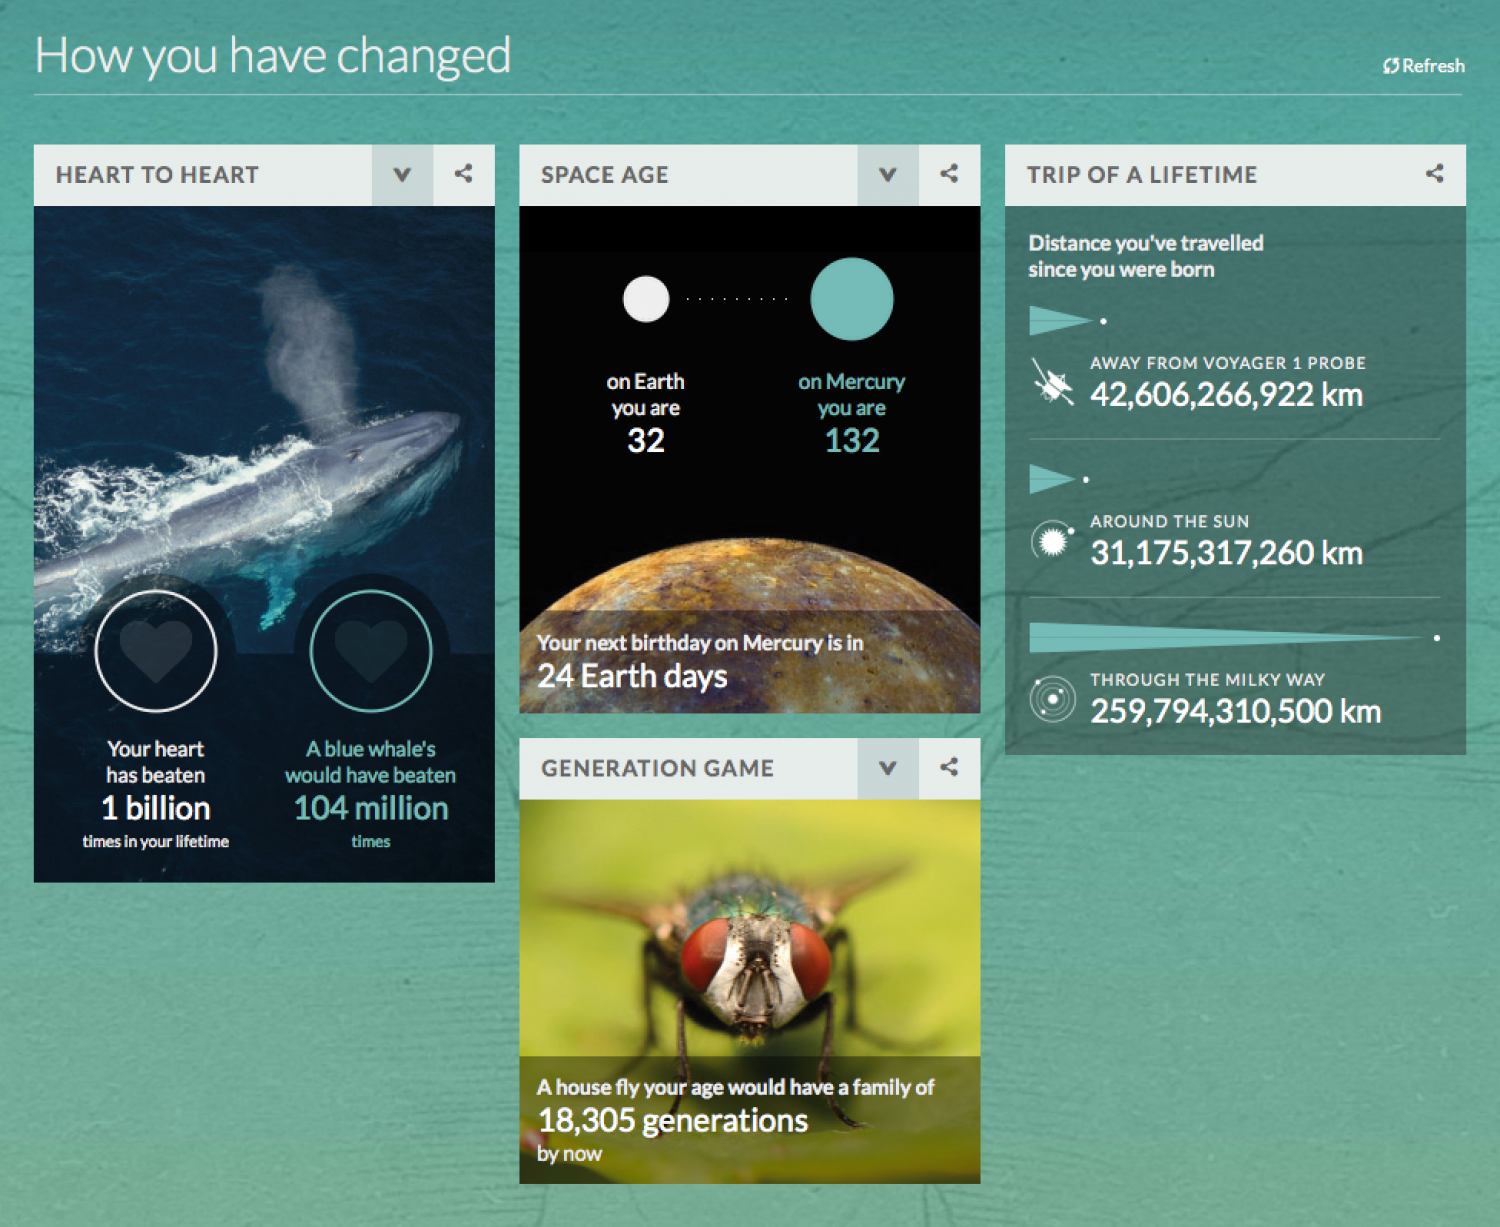 Your life on Earth Infographic